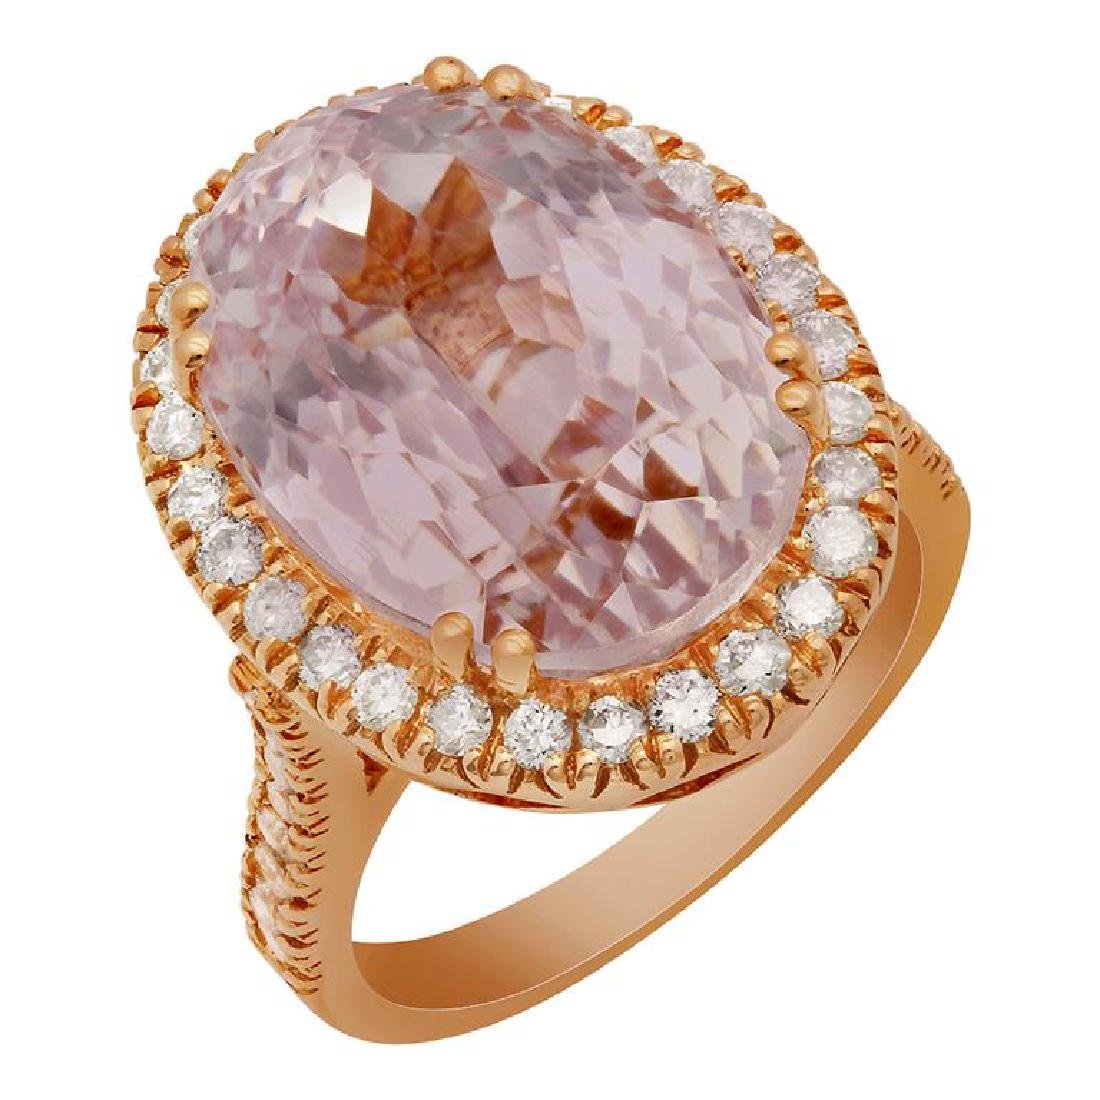 14k Rose Gold 16.01ct Kunzite 1.02ct Diamond Ring